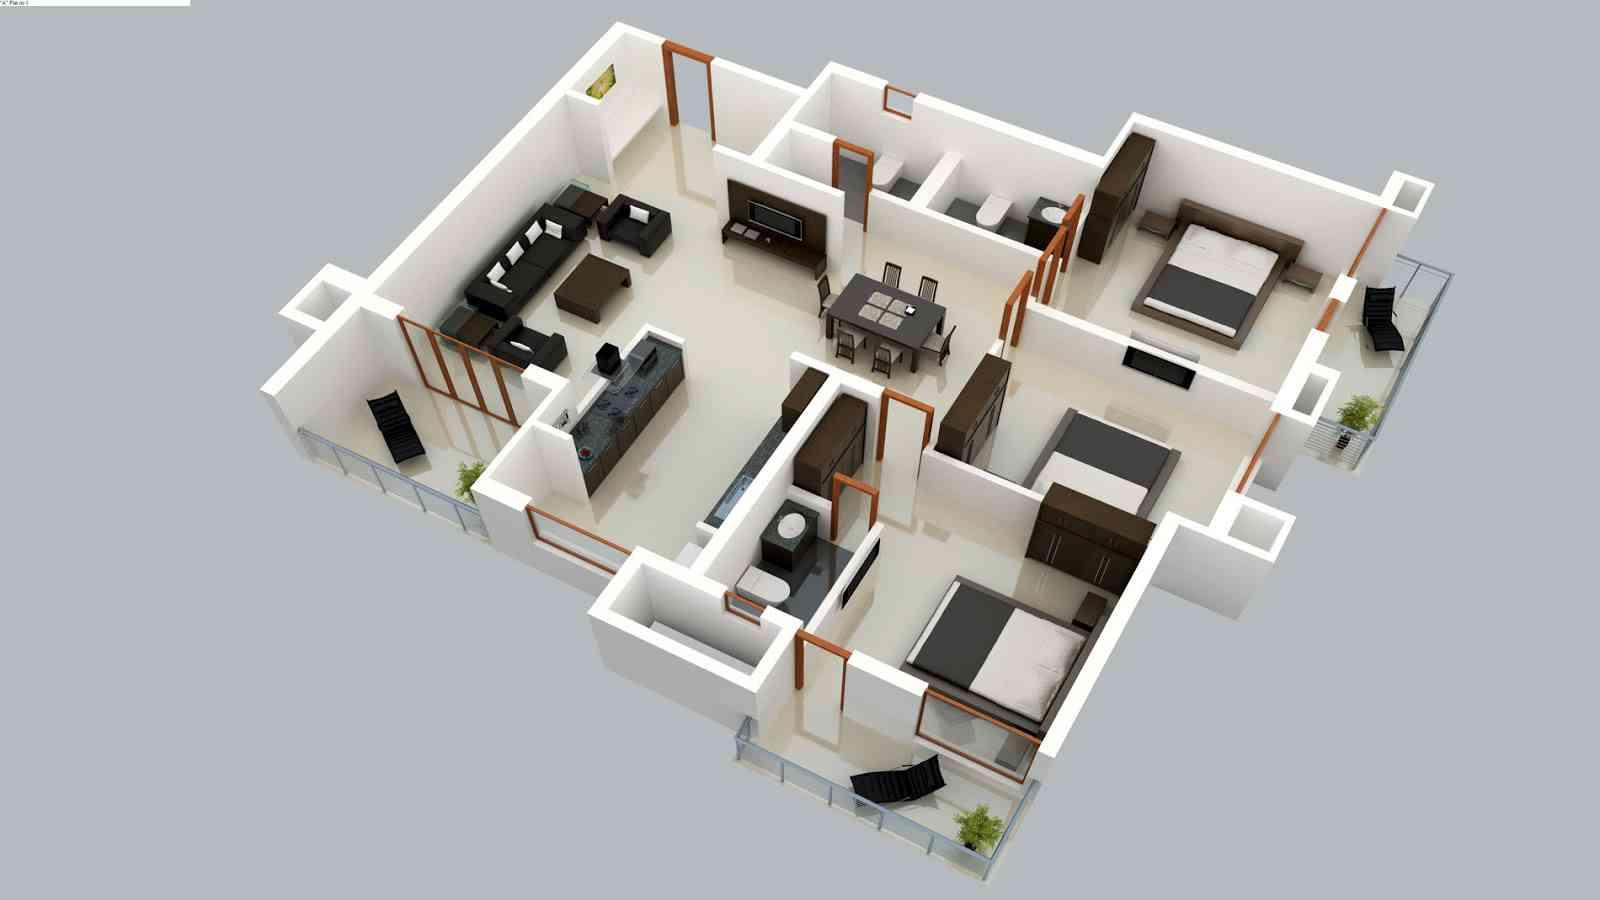 Home Design Plans 3D Creative 3D Home Floor Plan Ideas  Android Apps On Google Play